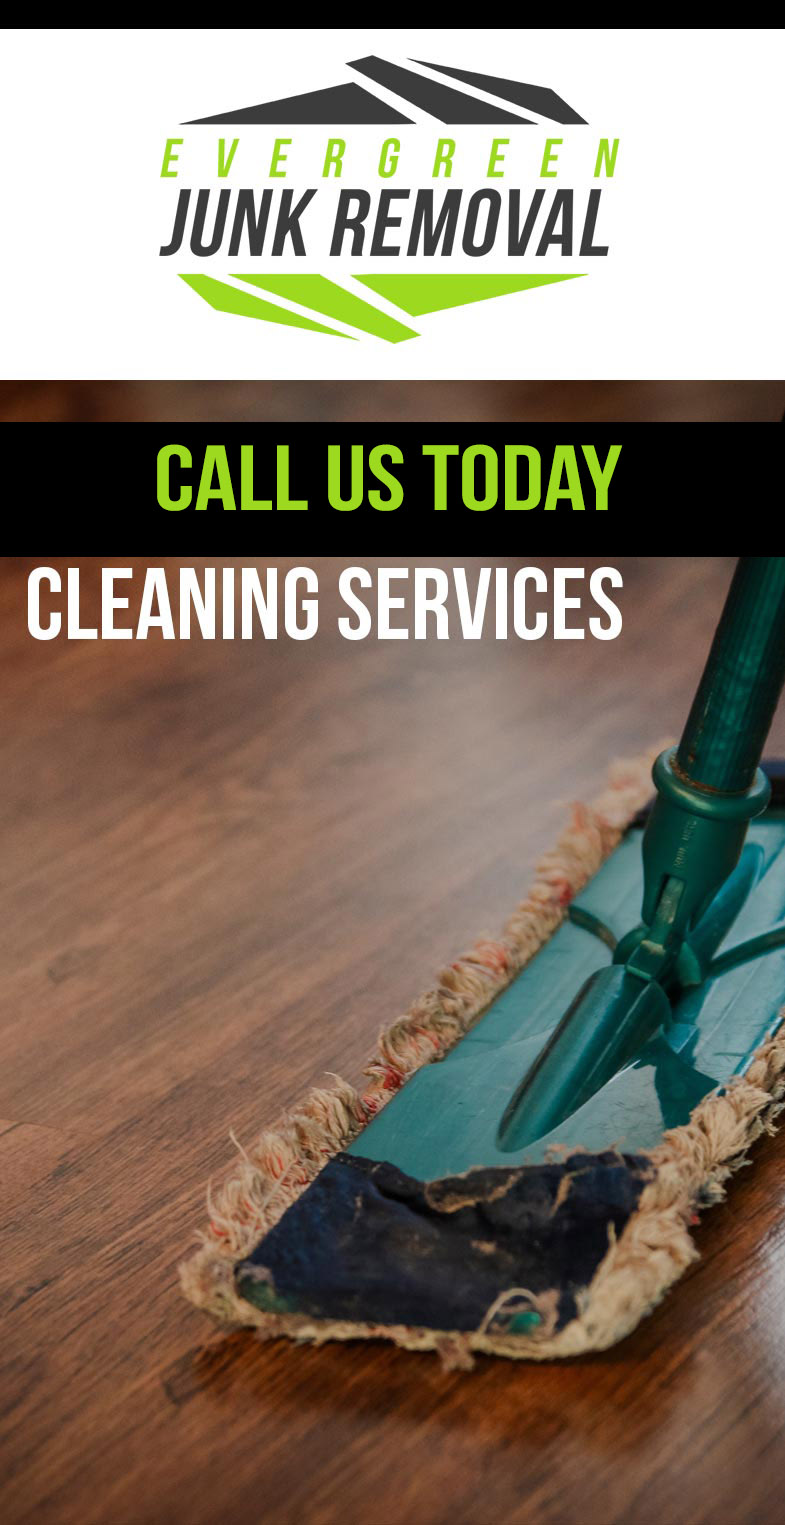 Washington Park Florida Maid Services